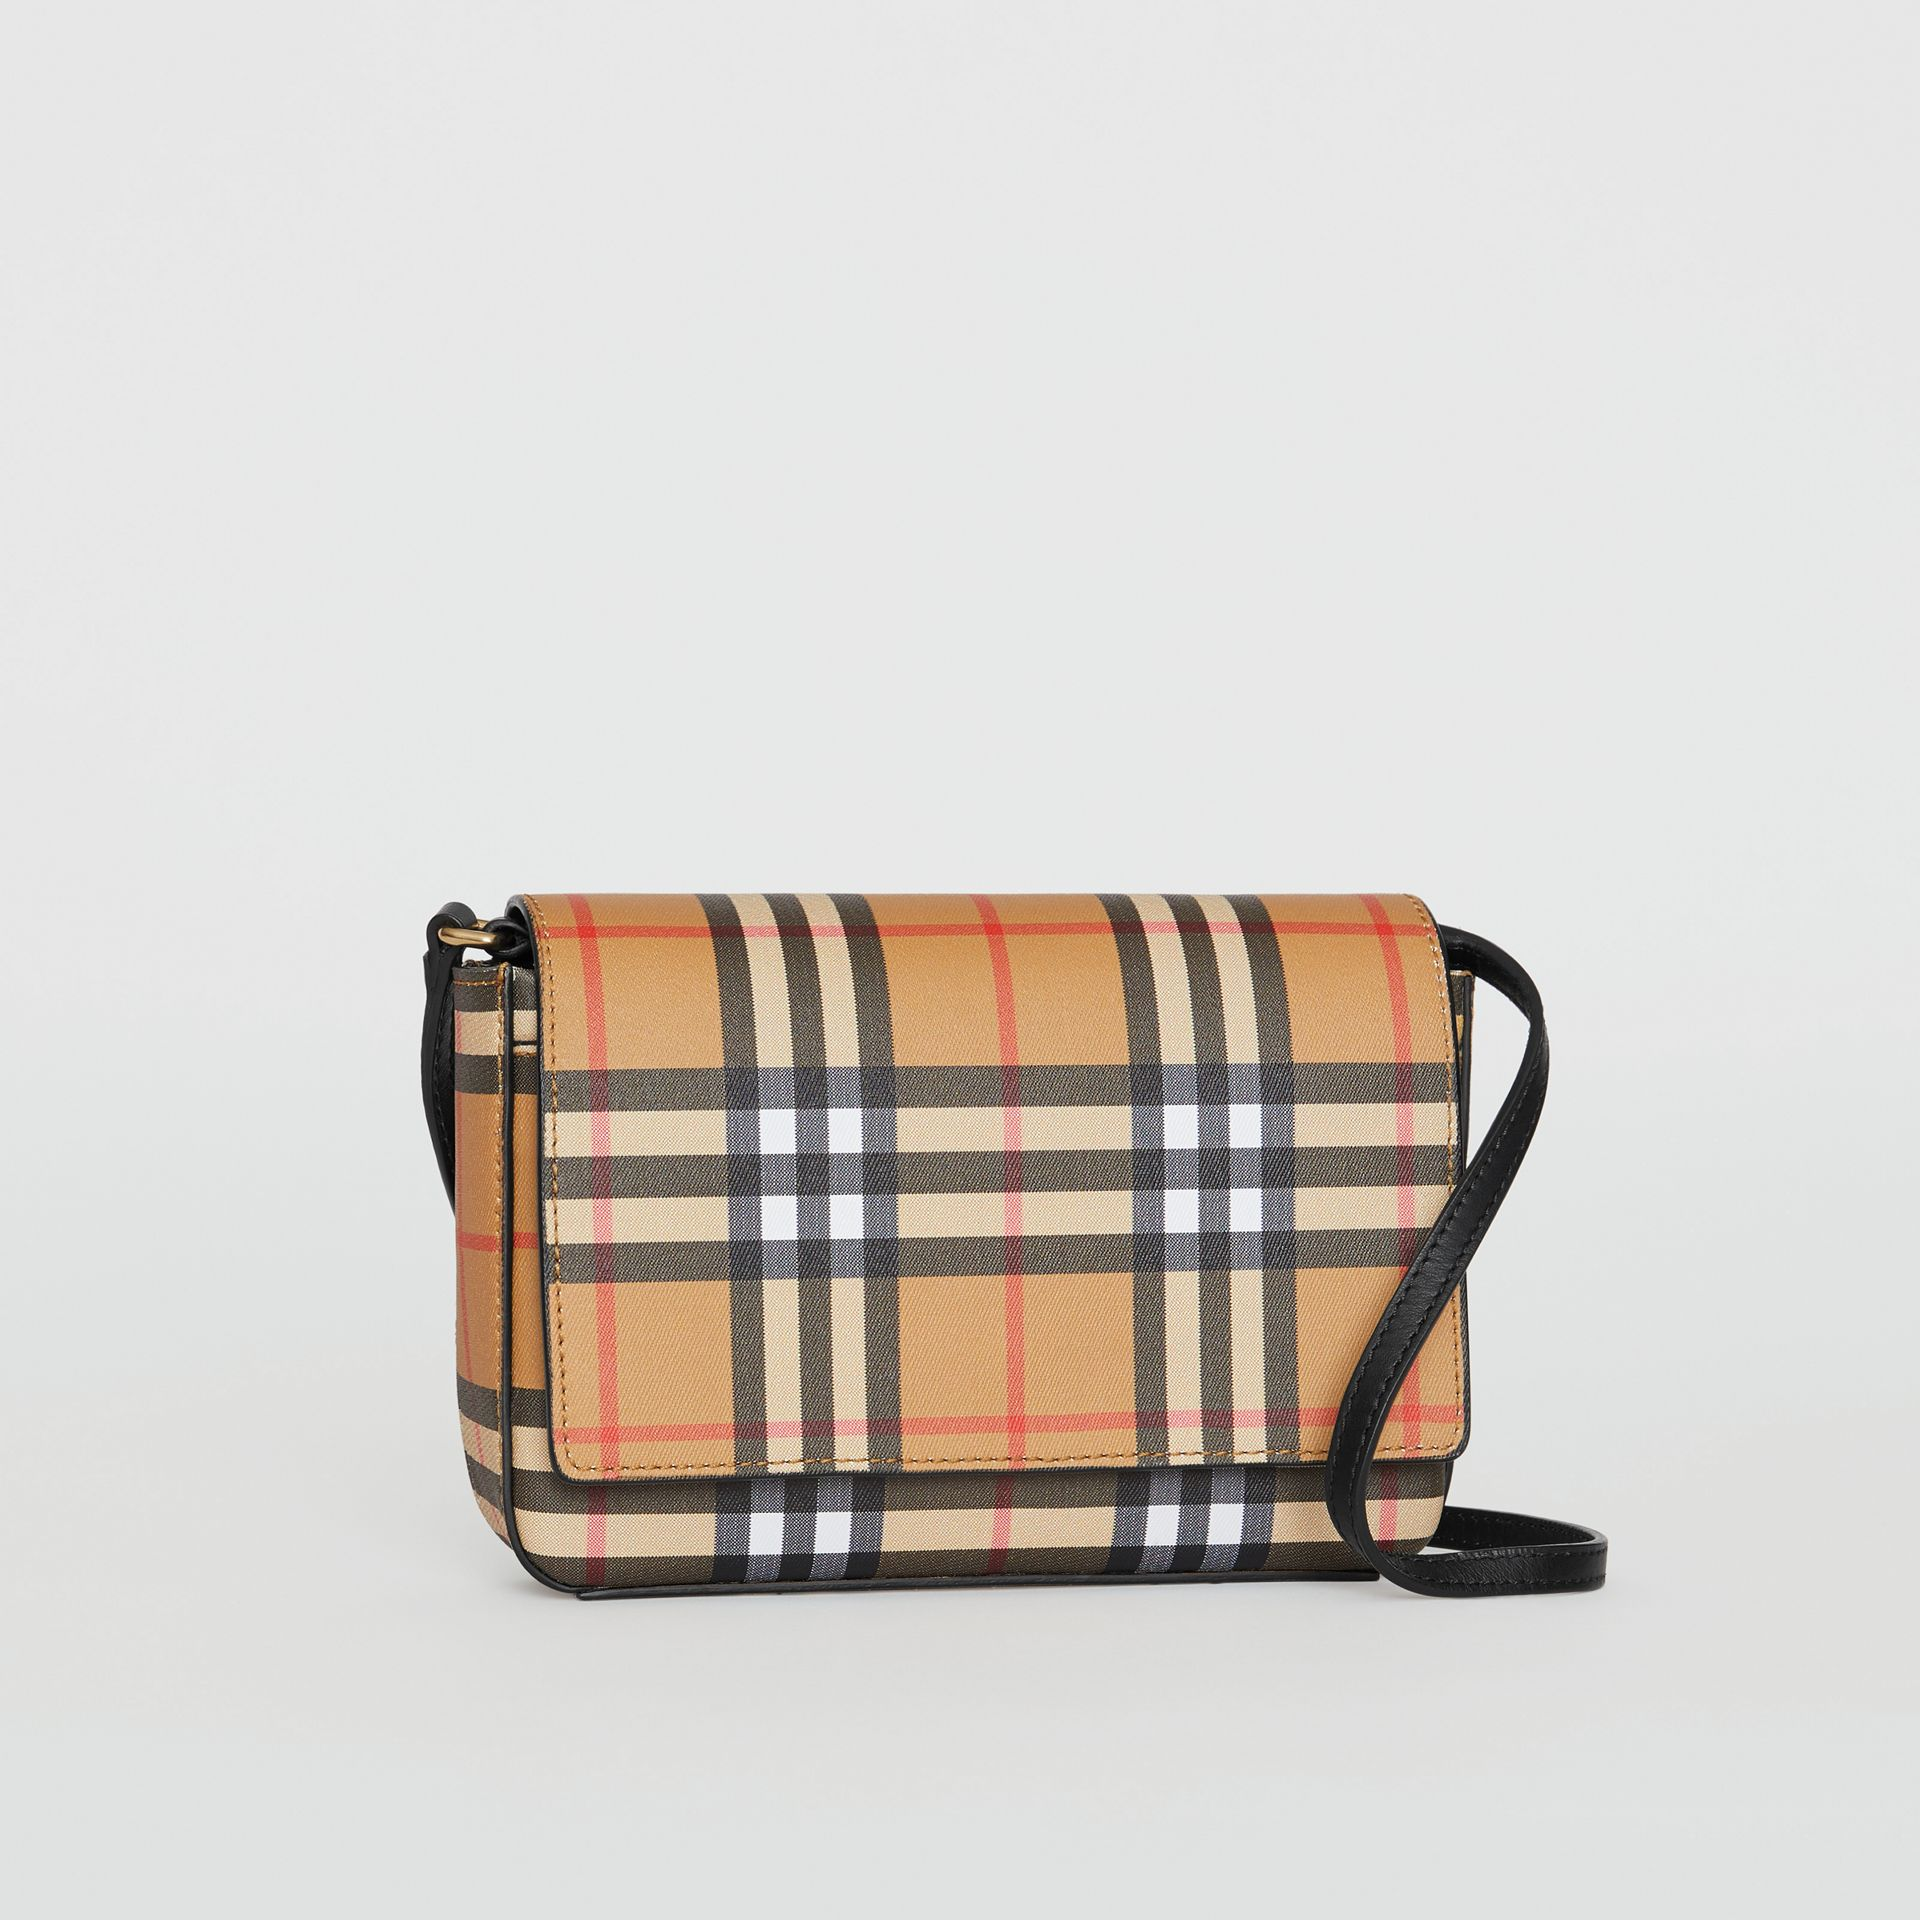 Vintage Check and Leather Wallet with Detachable Strap in Black - Women | Burberry Singapore - gallery image 4